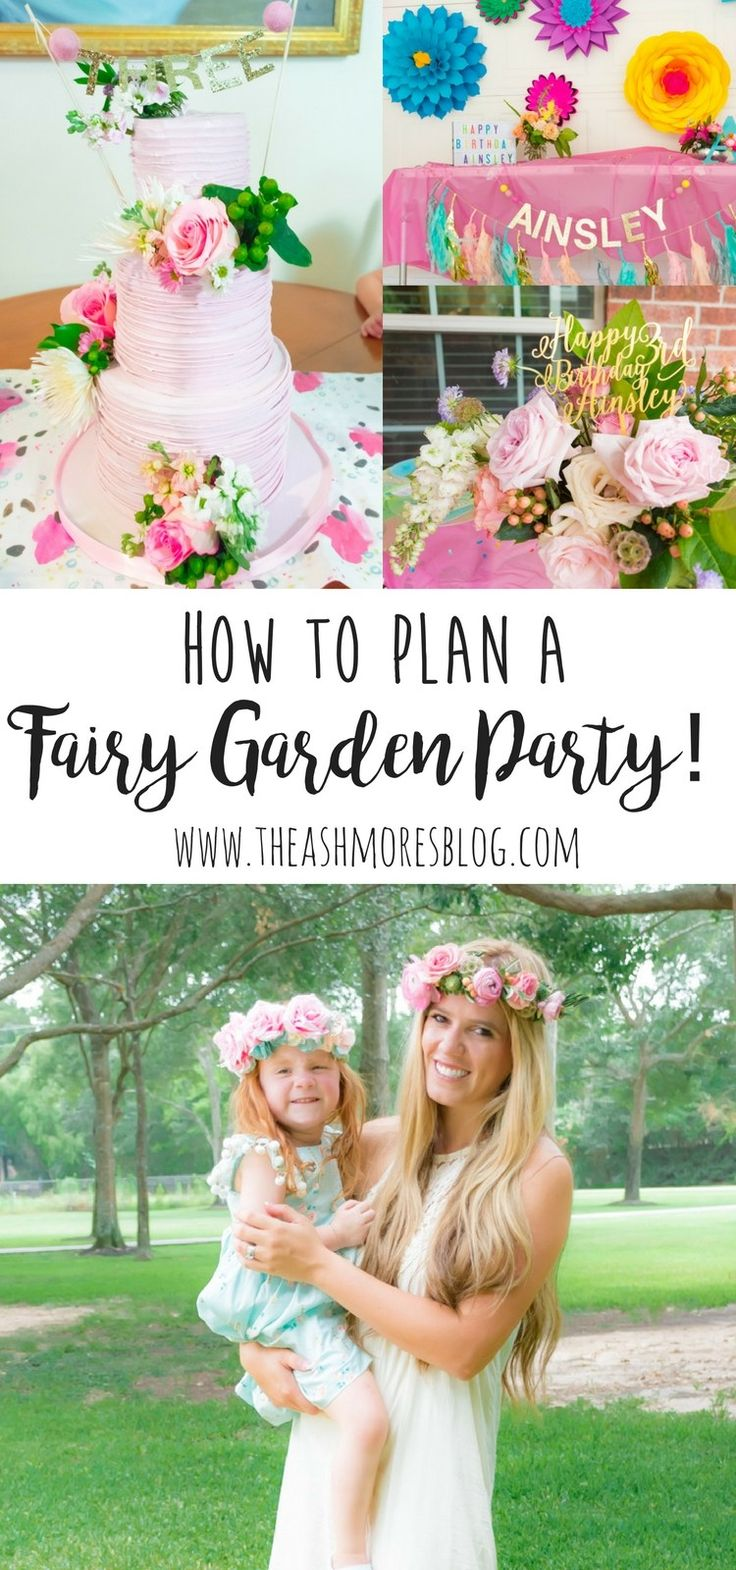 How to plan a Fairy Garden Party!  #gardenparty  #fairyparty #birthdayparty #birthdaydecor #partyprep